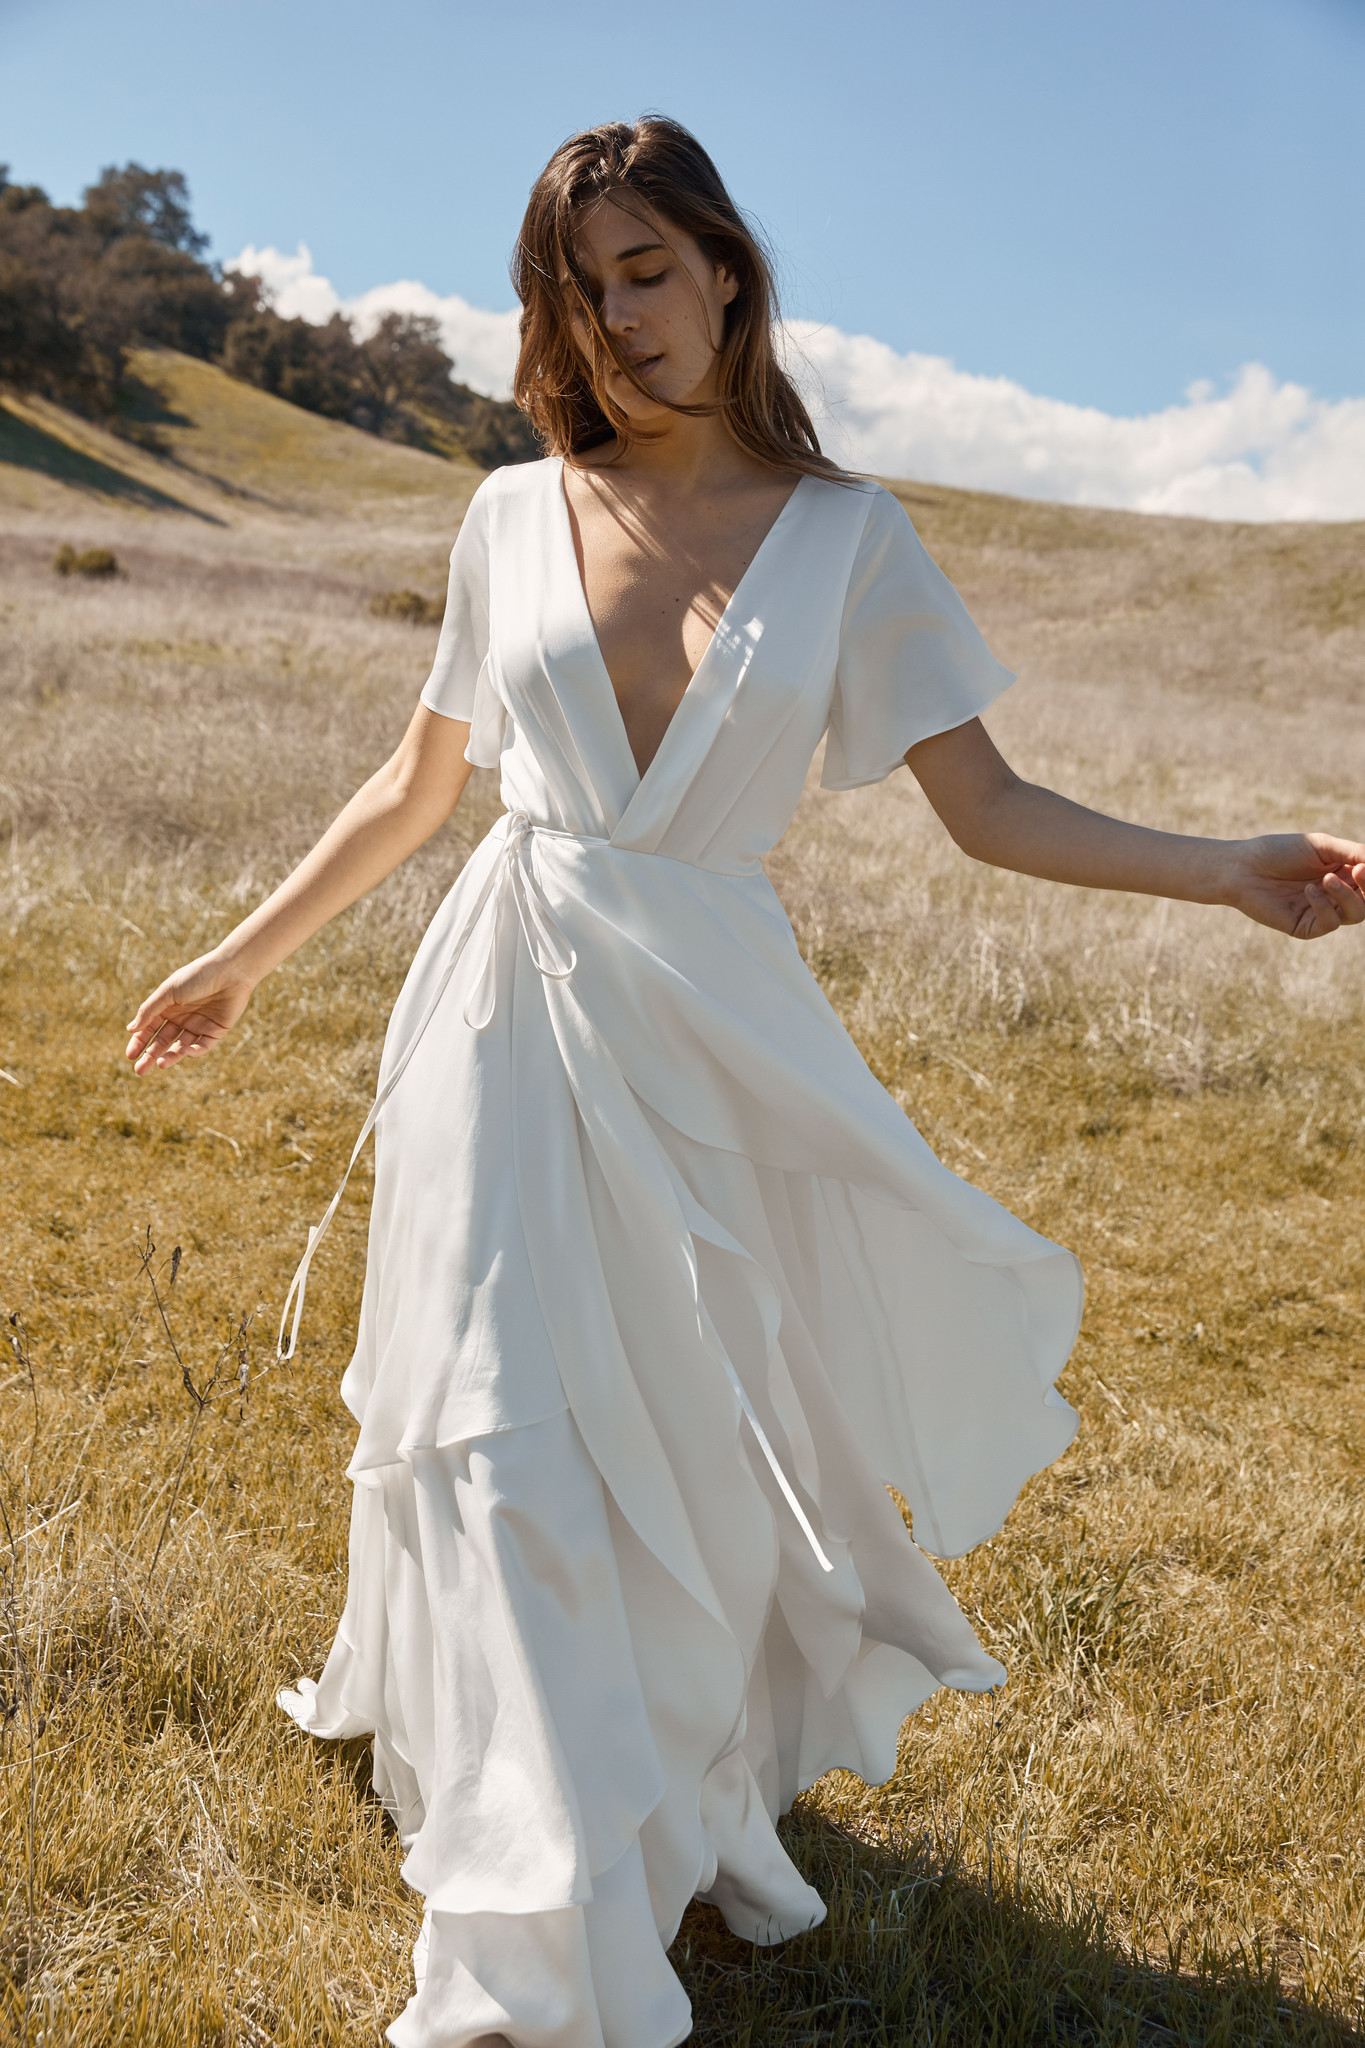 Here's the Athena dress ($1,800) from Christy Dawn's bridal collection.